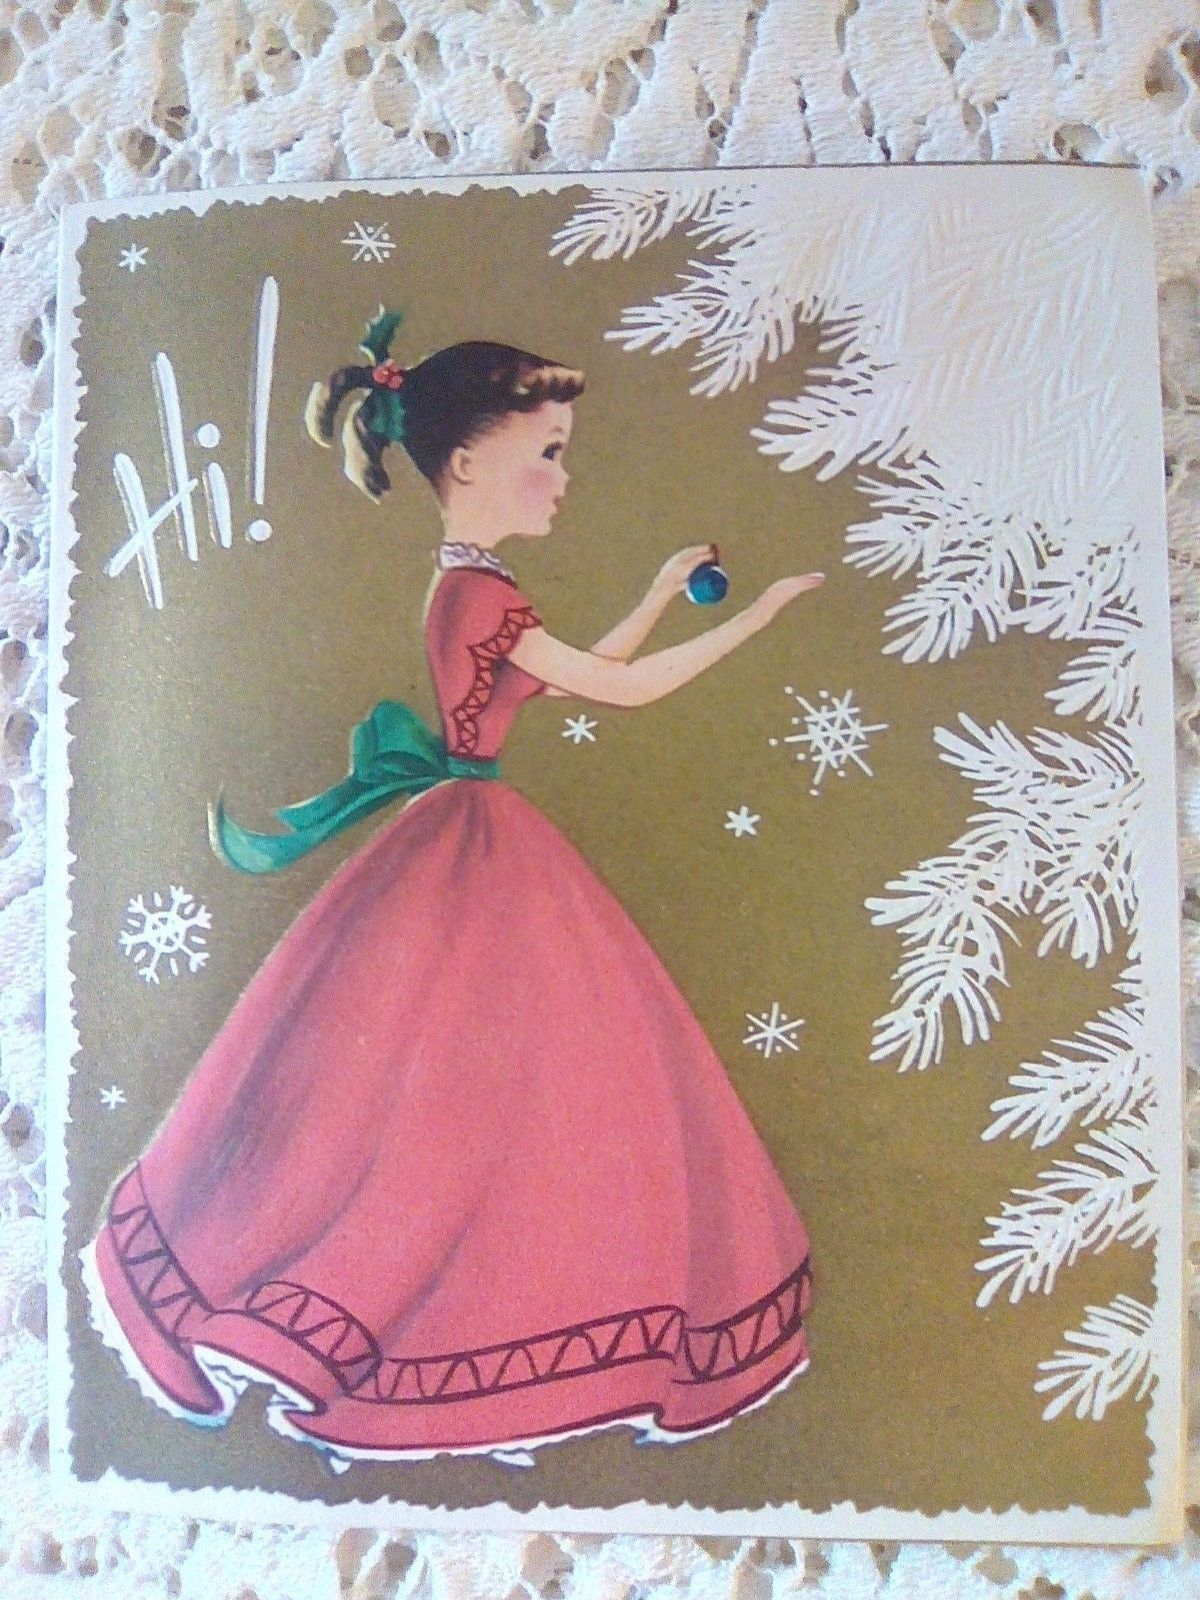 Vtg CHRISTMAS Pony Tail Girl Hangs Ornament on Tree Pollyana Greeting CARD FOR SALE • $4.99 • See Photos! Money Back Guarantee. Vintage Pollyana Christmas card, Hi, girl in red dress hangs ornament on the white tree. The card measures about 5 3/4 x 4 3/4 inches, used, signed, tiny corner bend. 252567262719